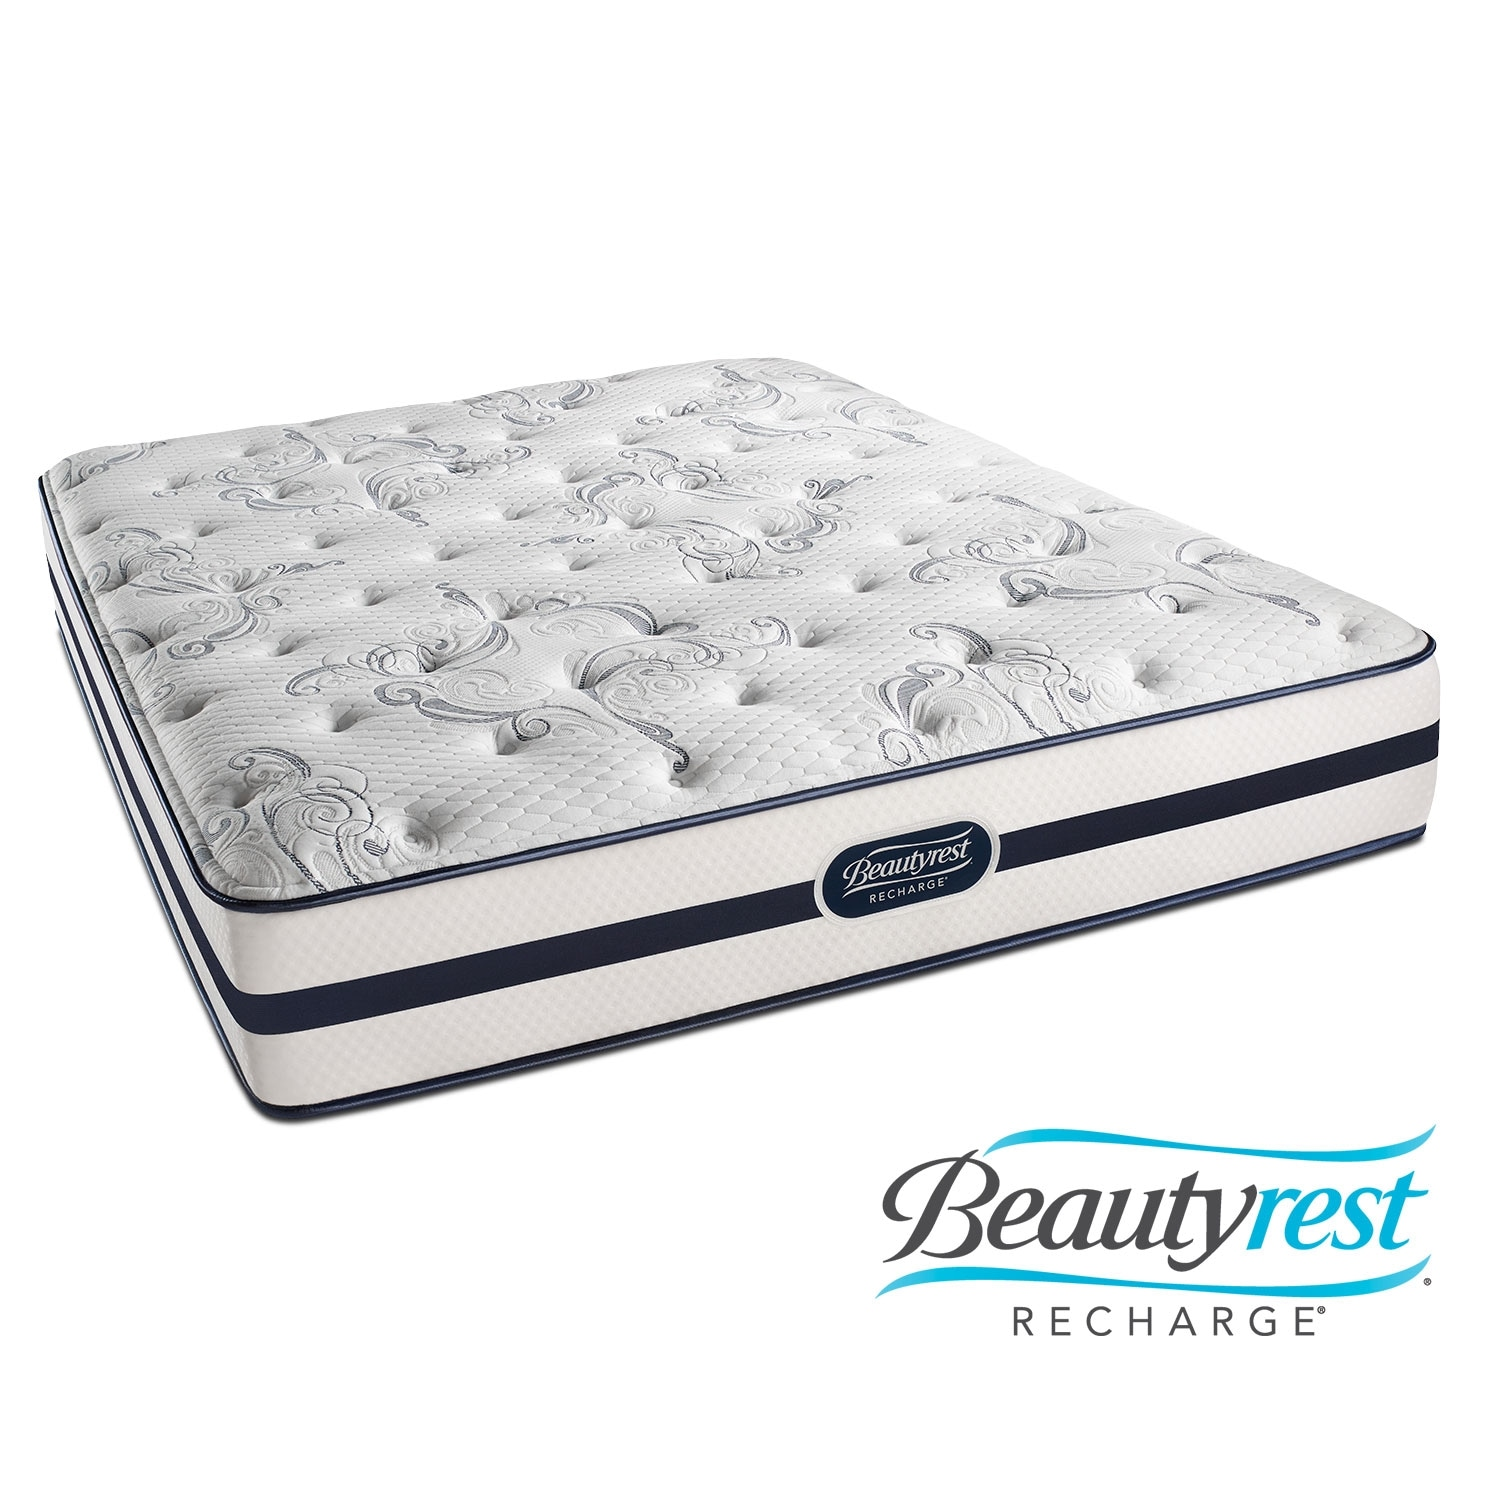 Mattresses and Bedding - Justine Plush California King Mattress